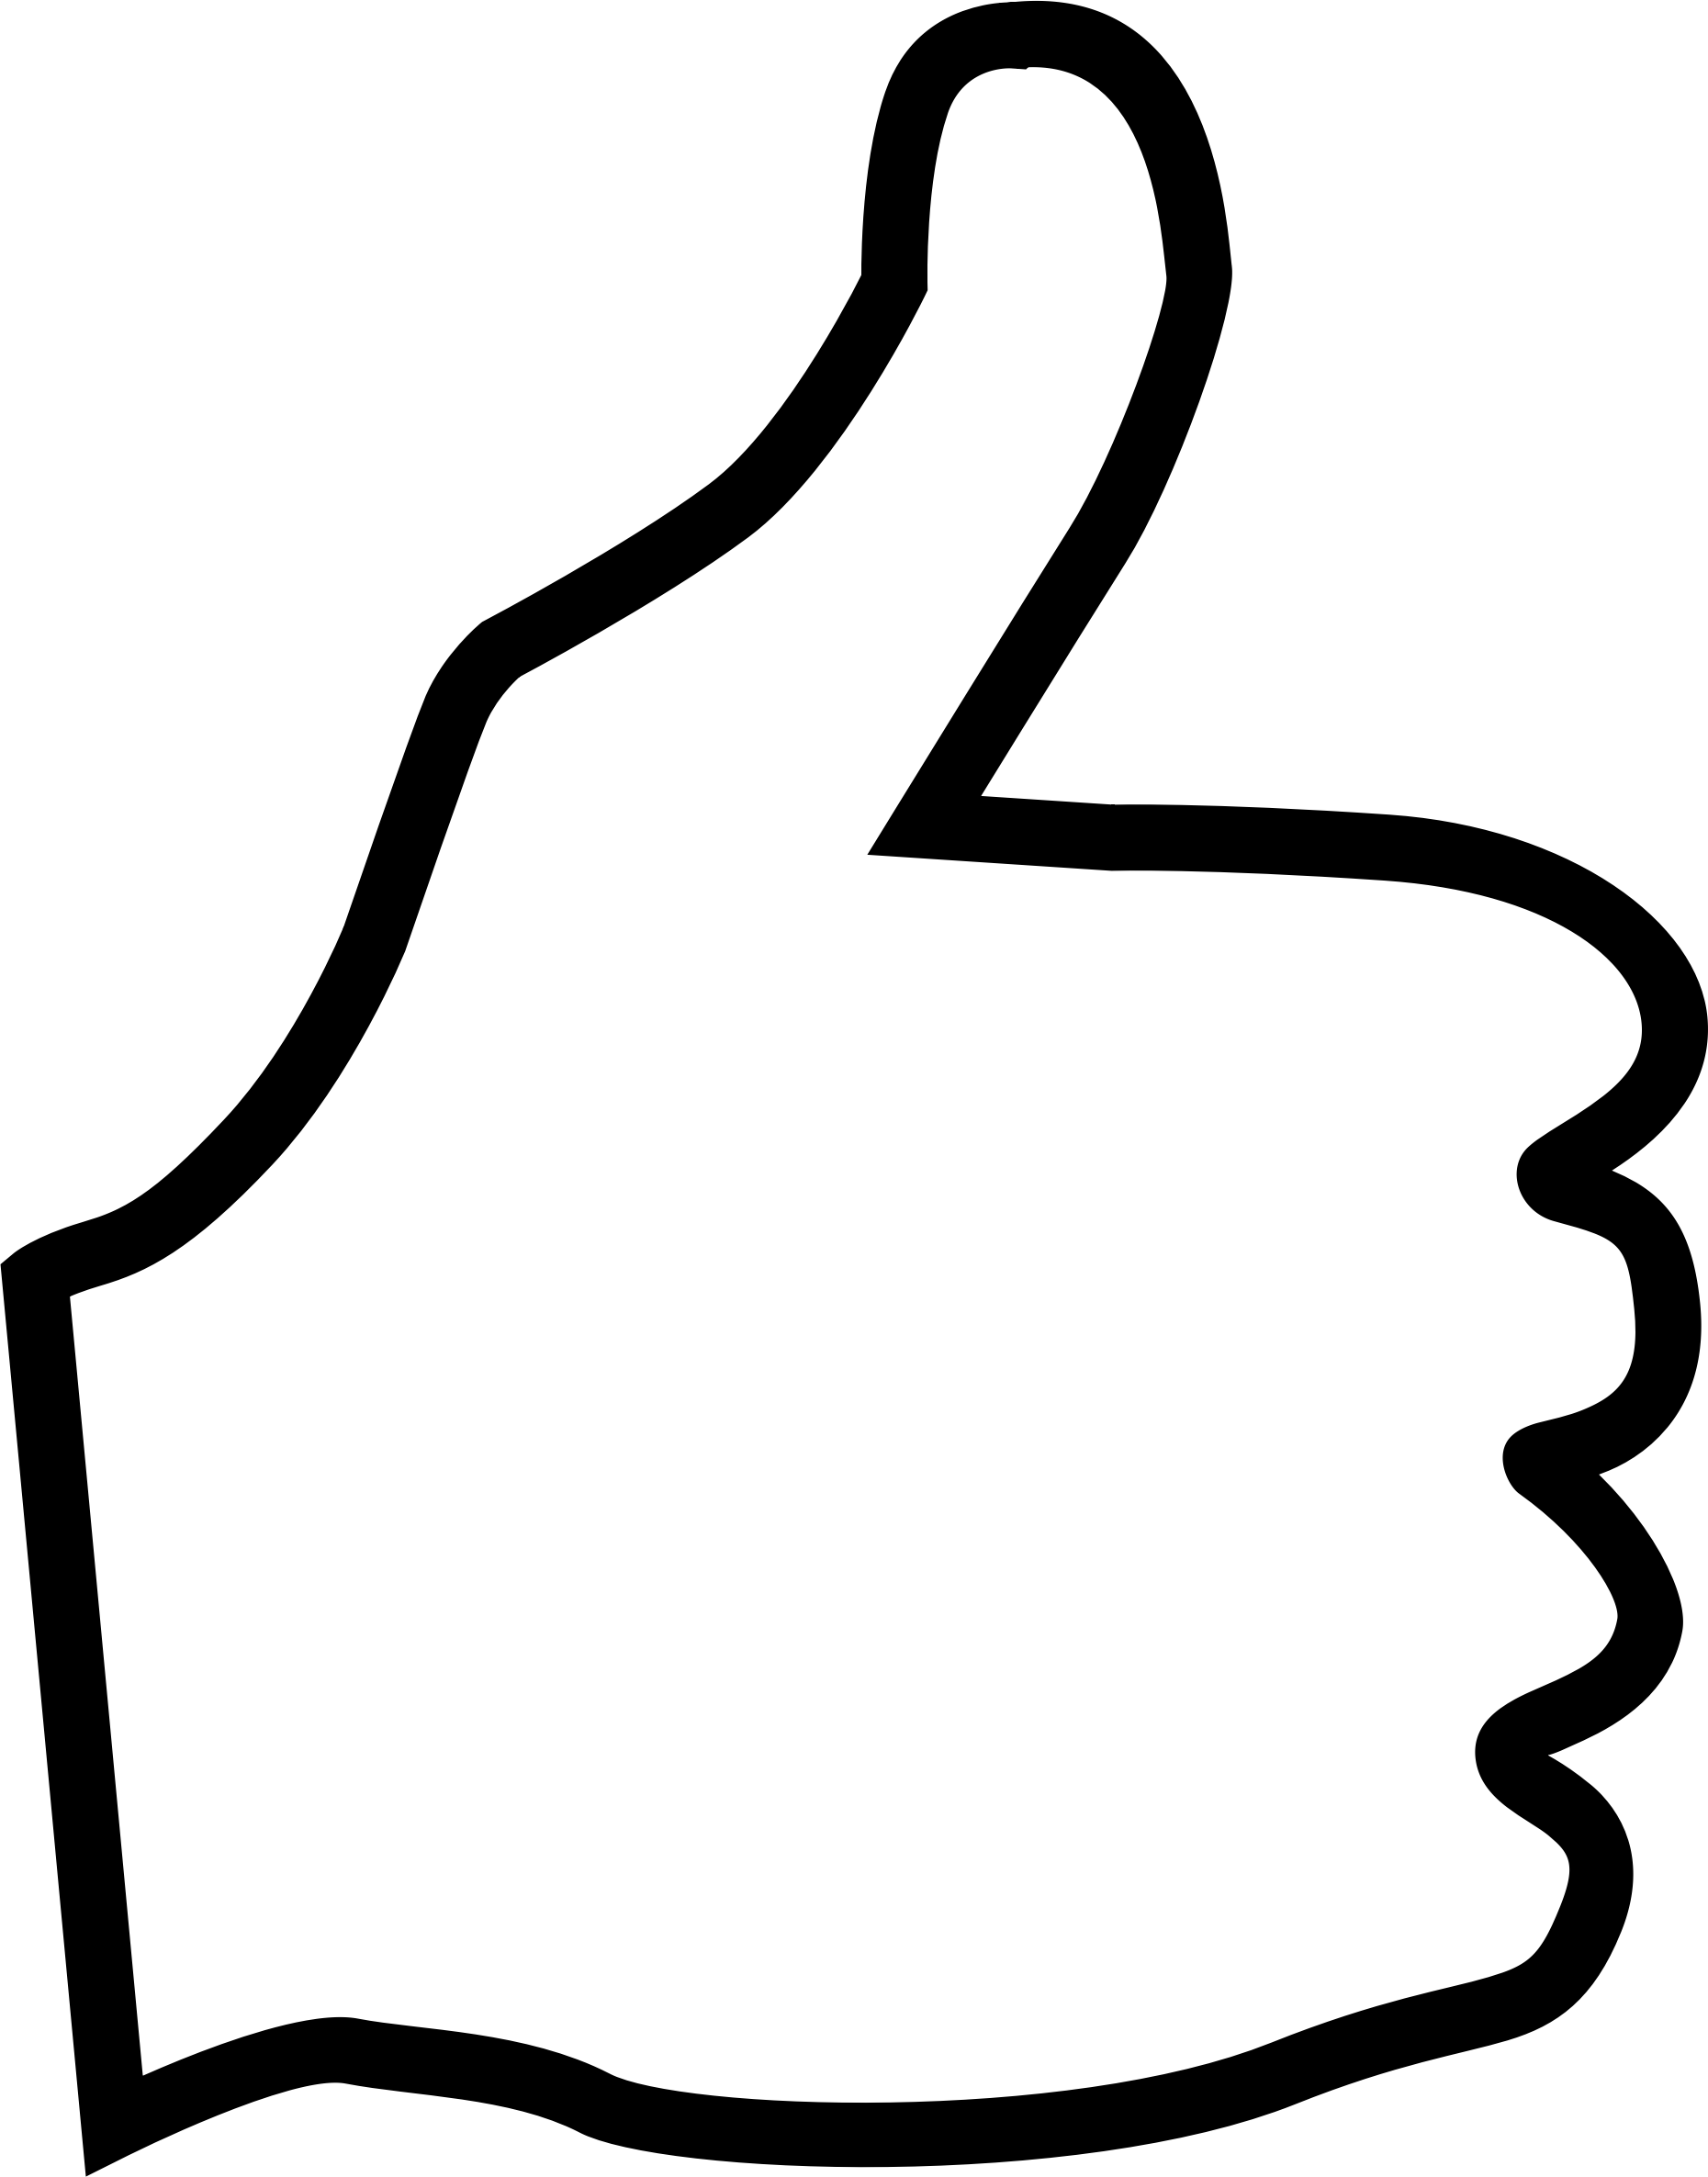 Thumbs up thumbs down clipart free vector free download Thumbs up outline clipart - ClipartFest vector free download